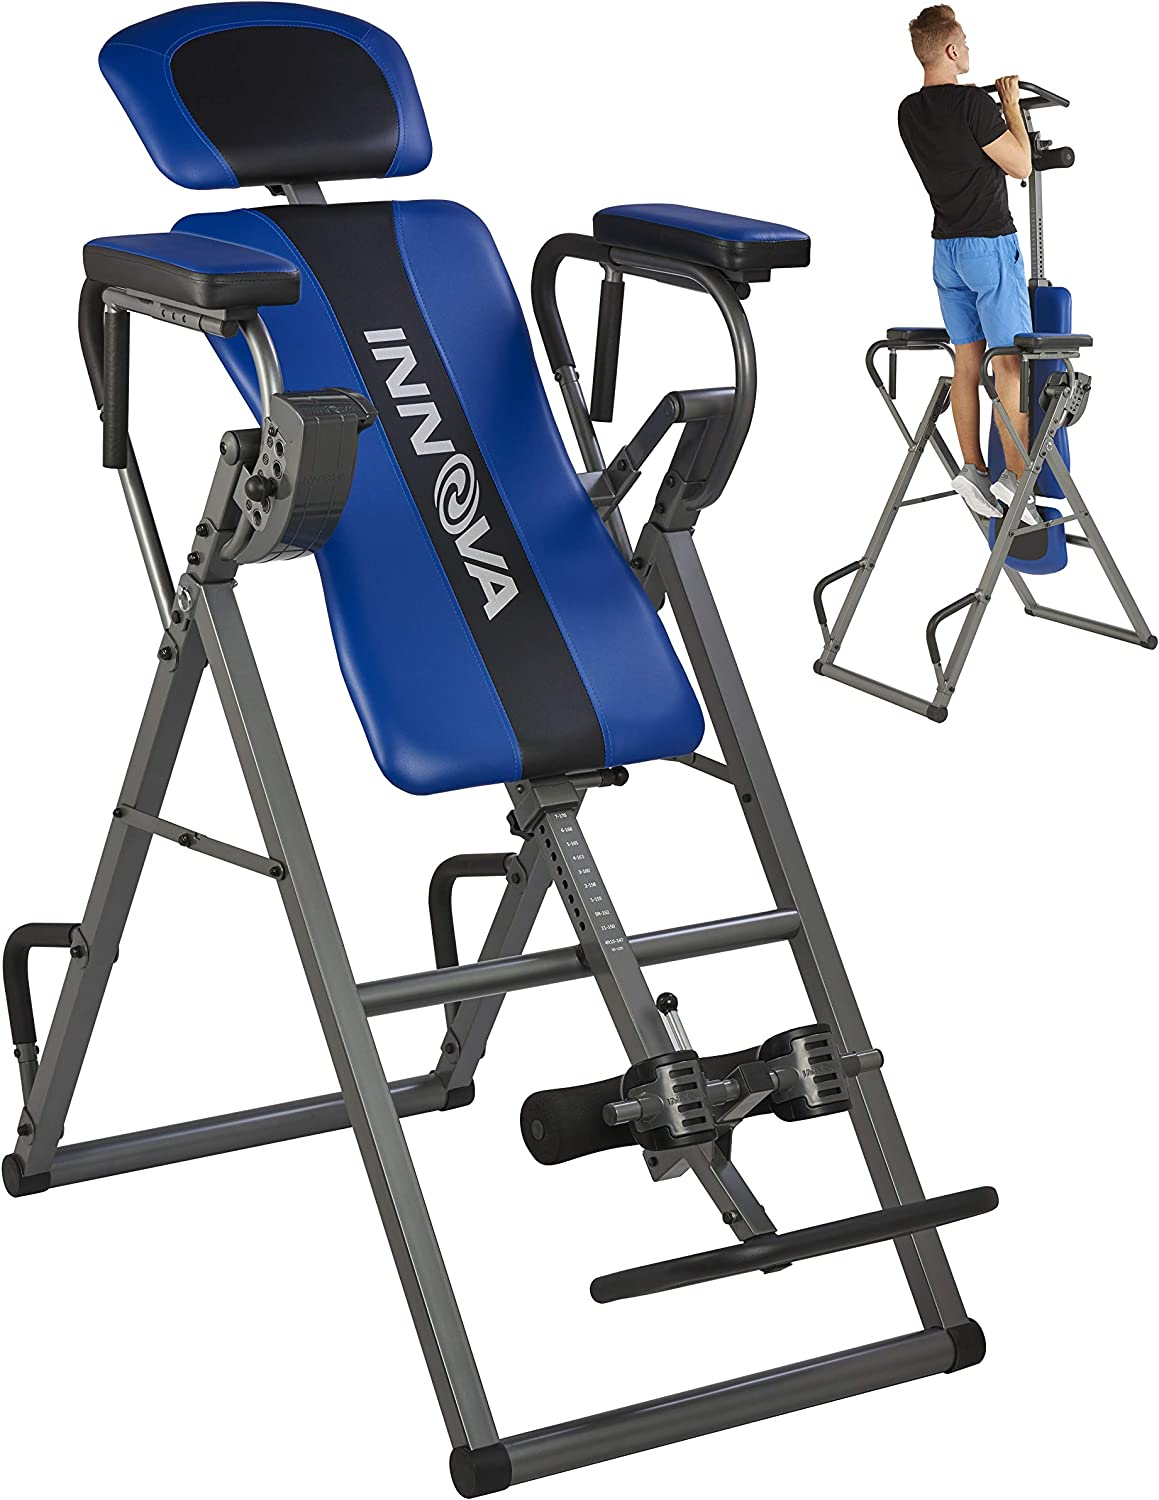 Innova Health and Fitness ITP1000 12-in-1 Inversion Table with Power Tower Workout Station